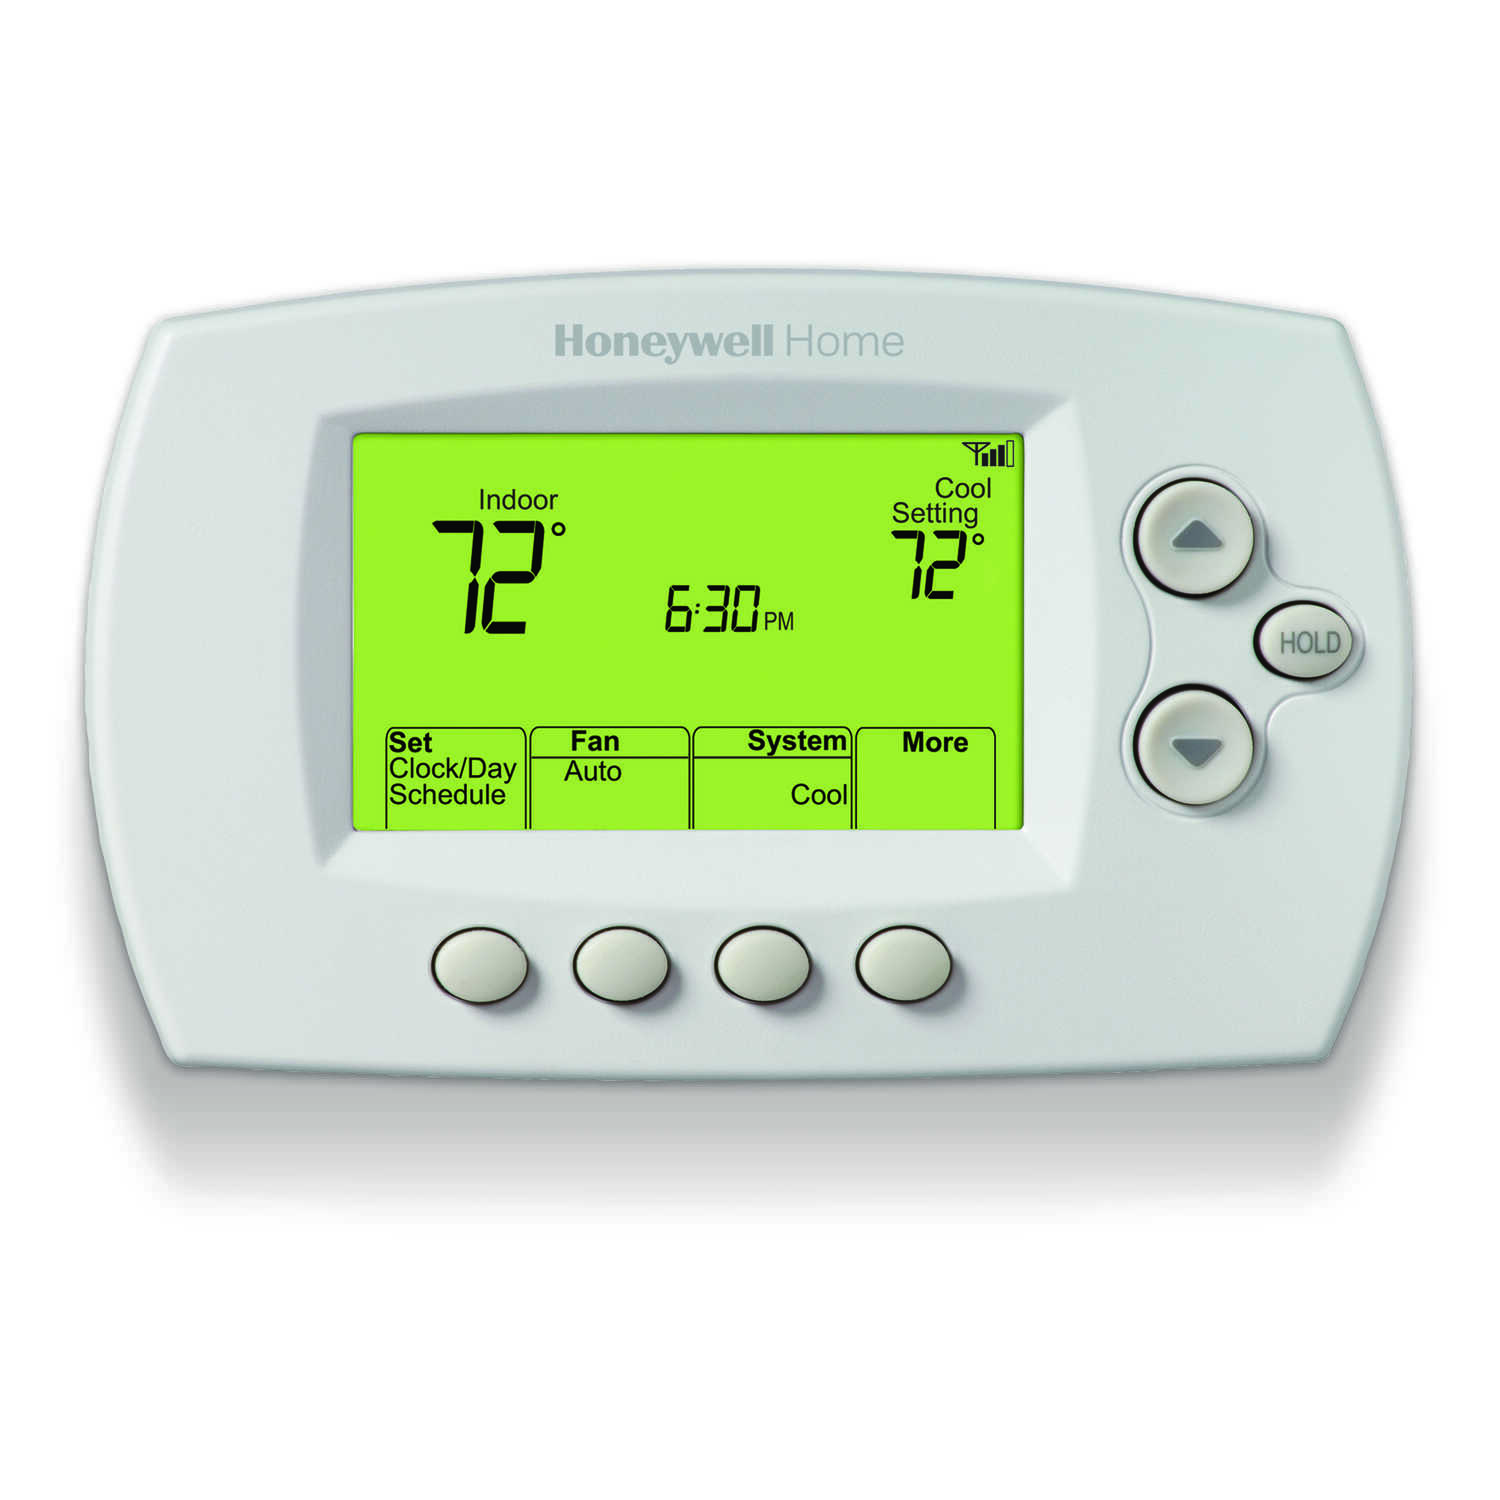 Thermostats and Heating Supplies